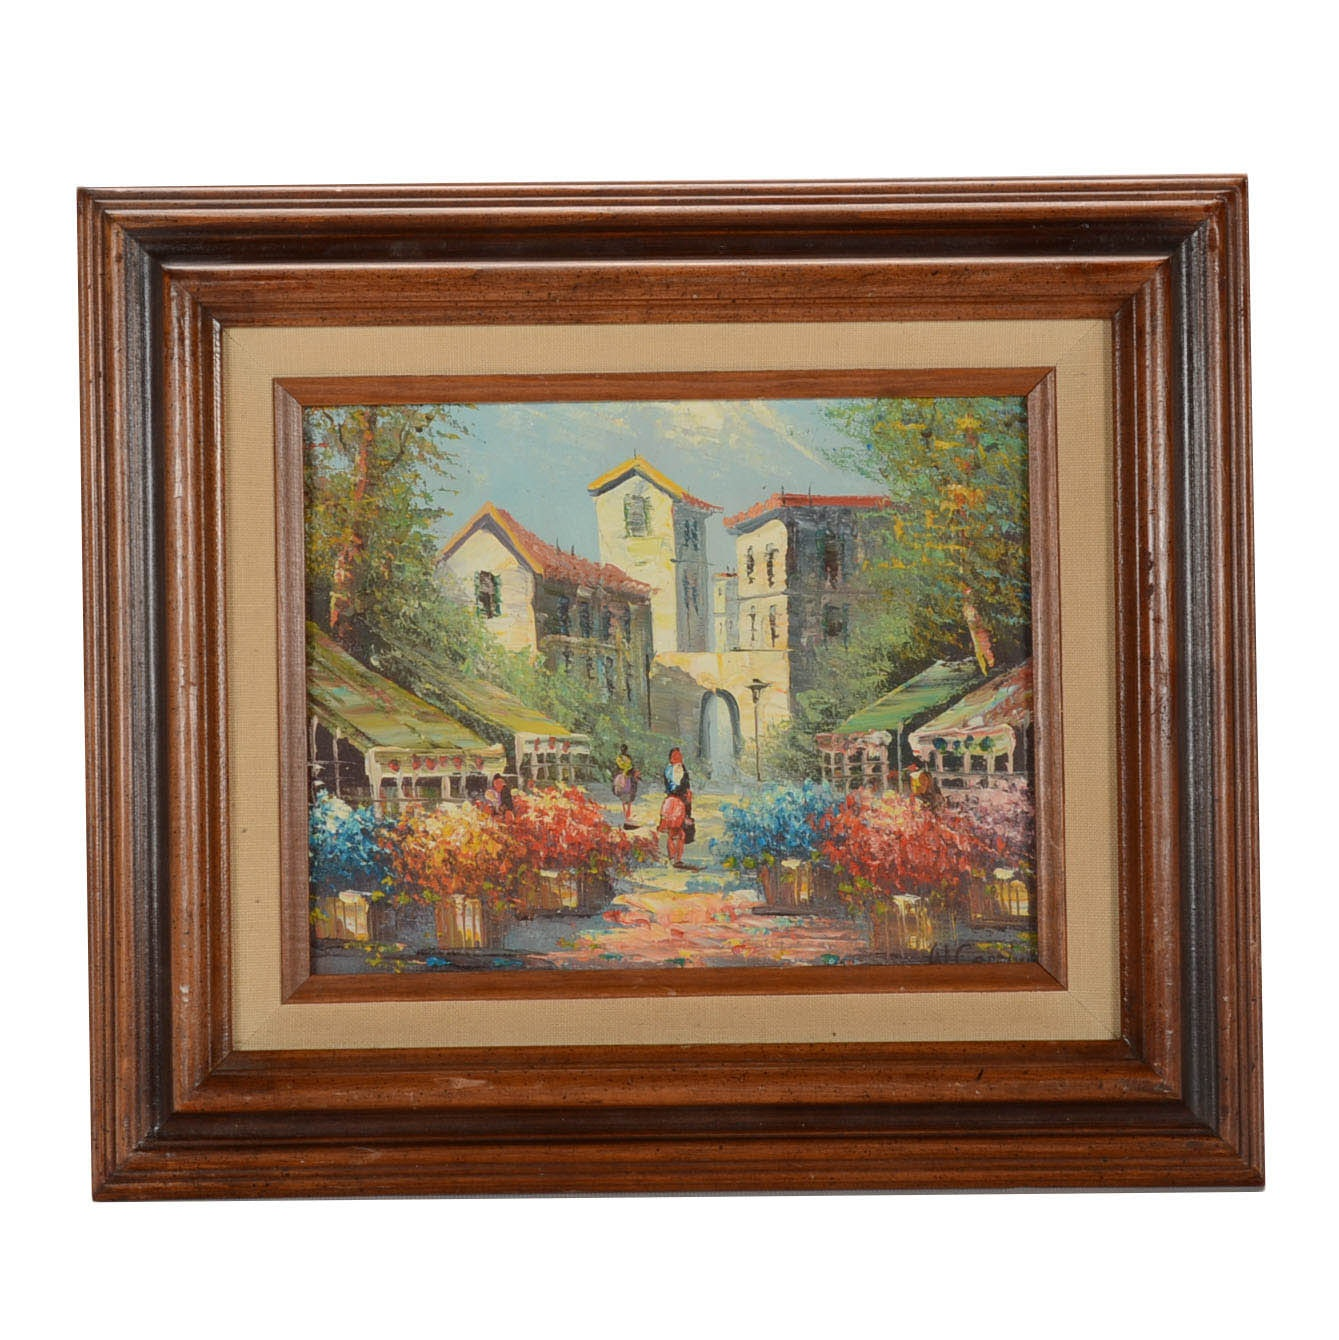 W. Corchy Original Vintage Oil Painting on Canvas